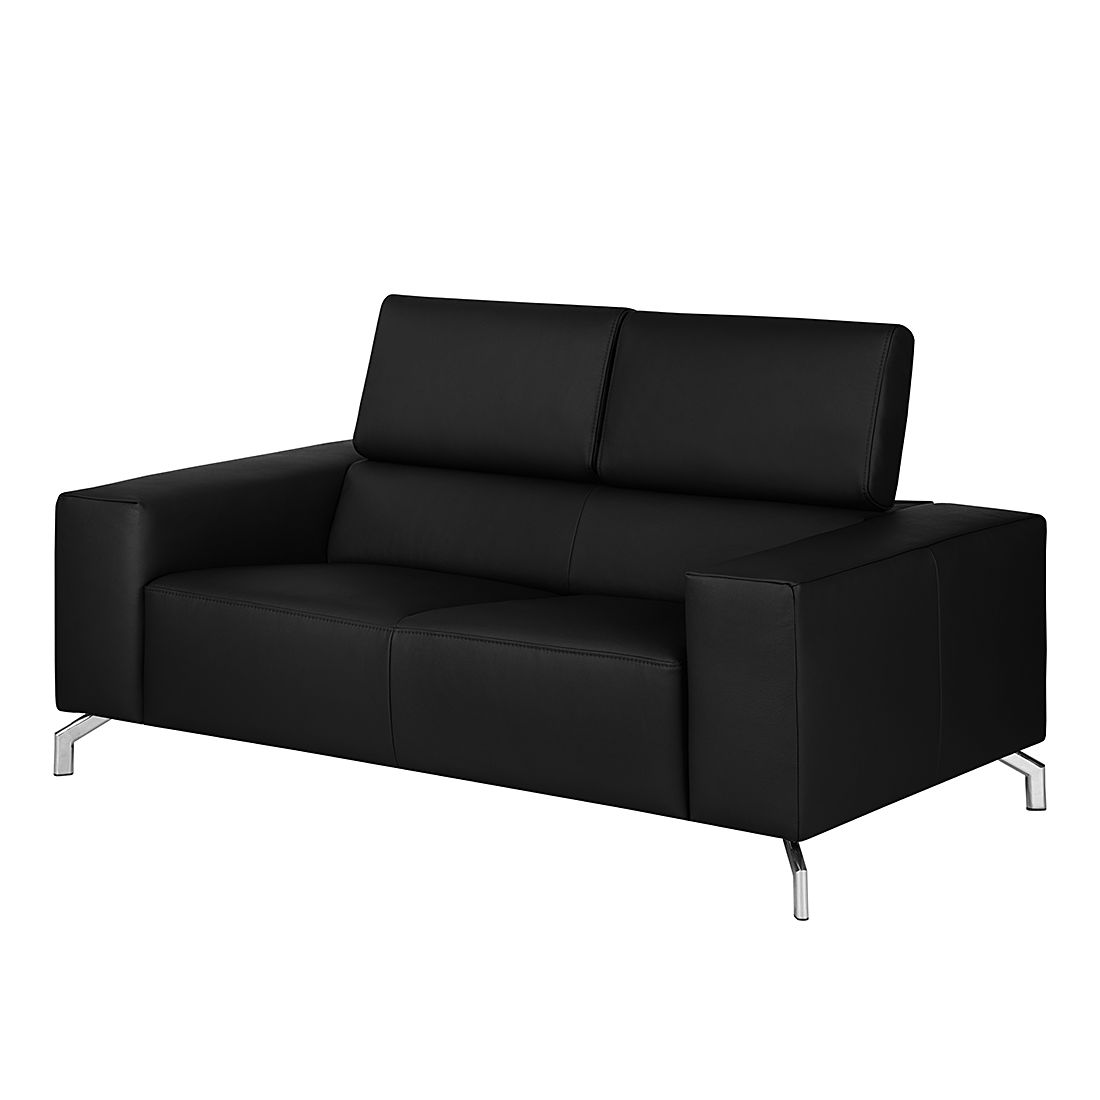 sofa varberg 2 sitzer echtleder schwarz fredriks. Black Bedroom Furniture Sets. Home Design Ideas